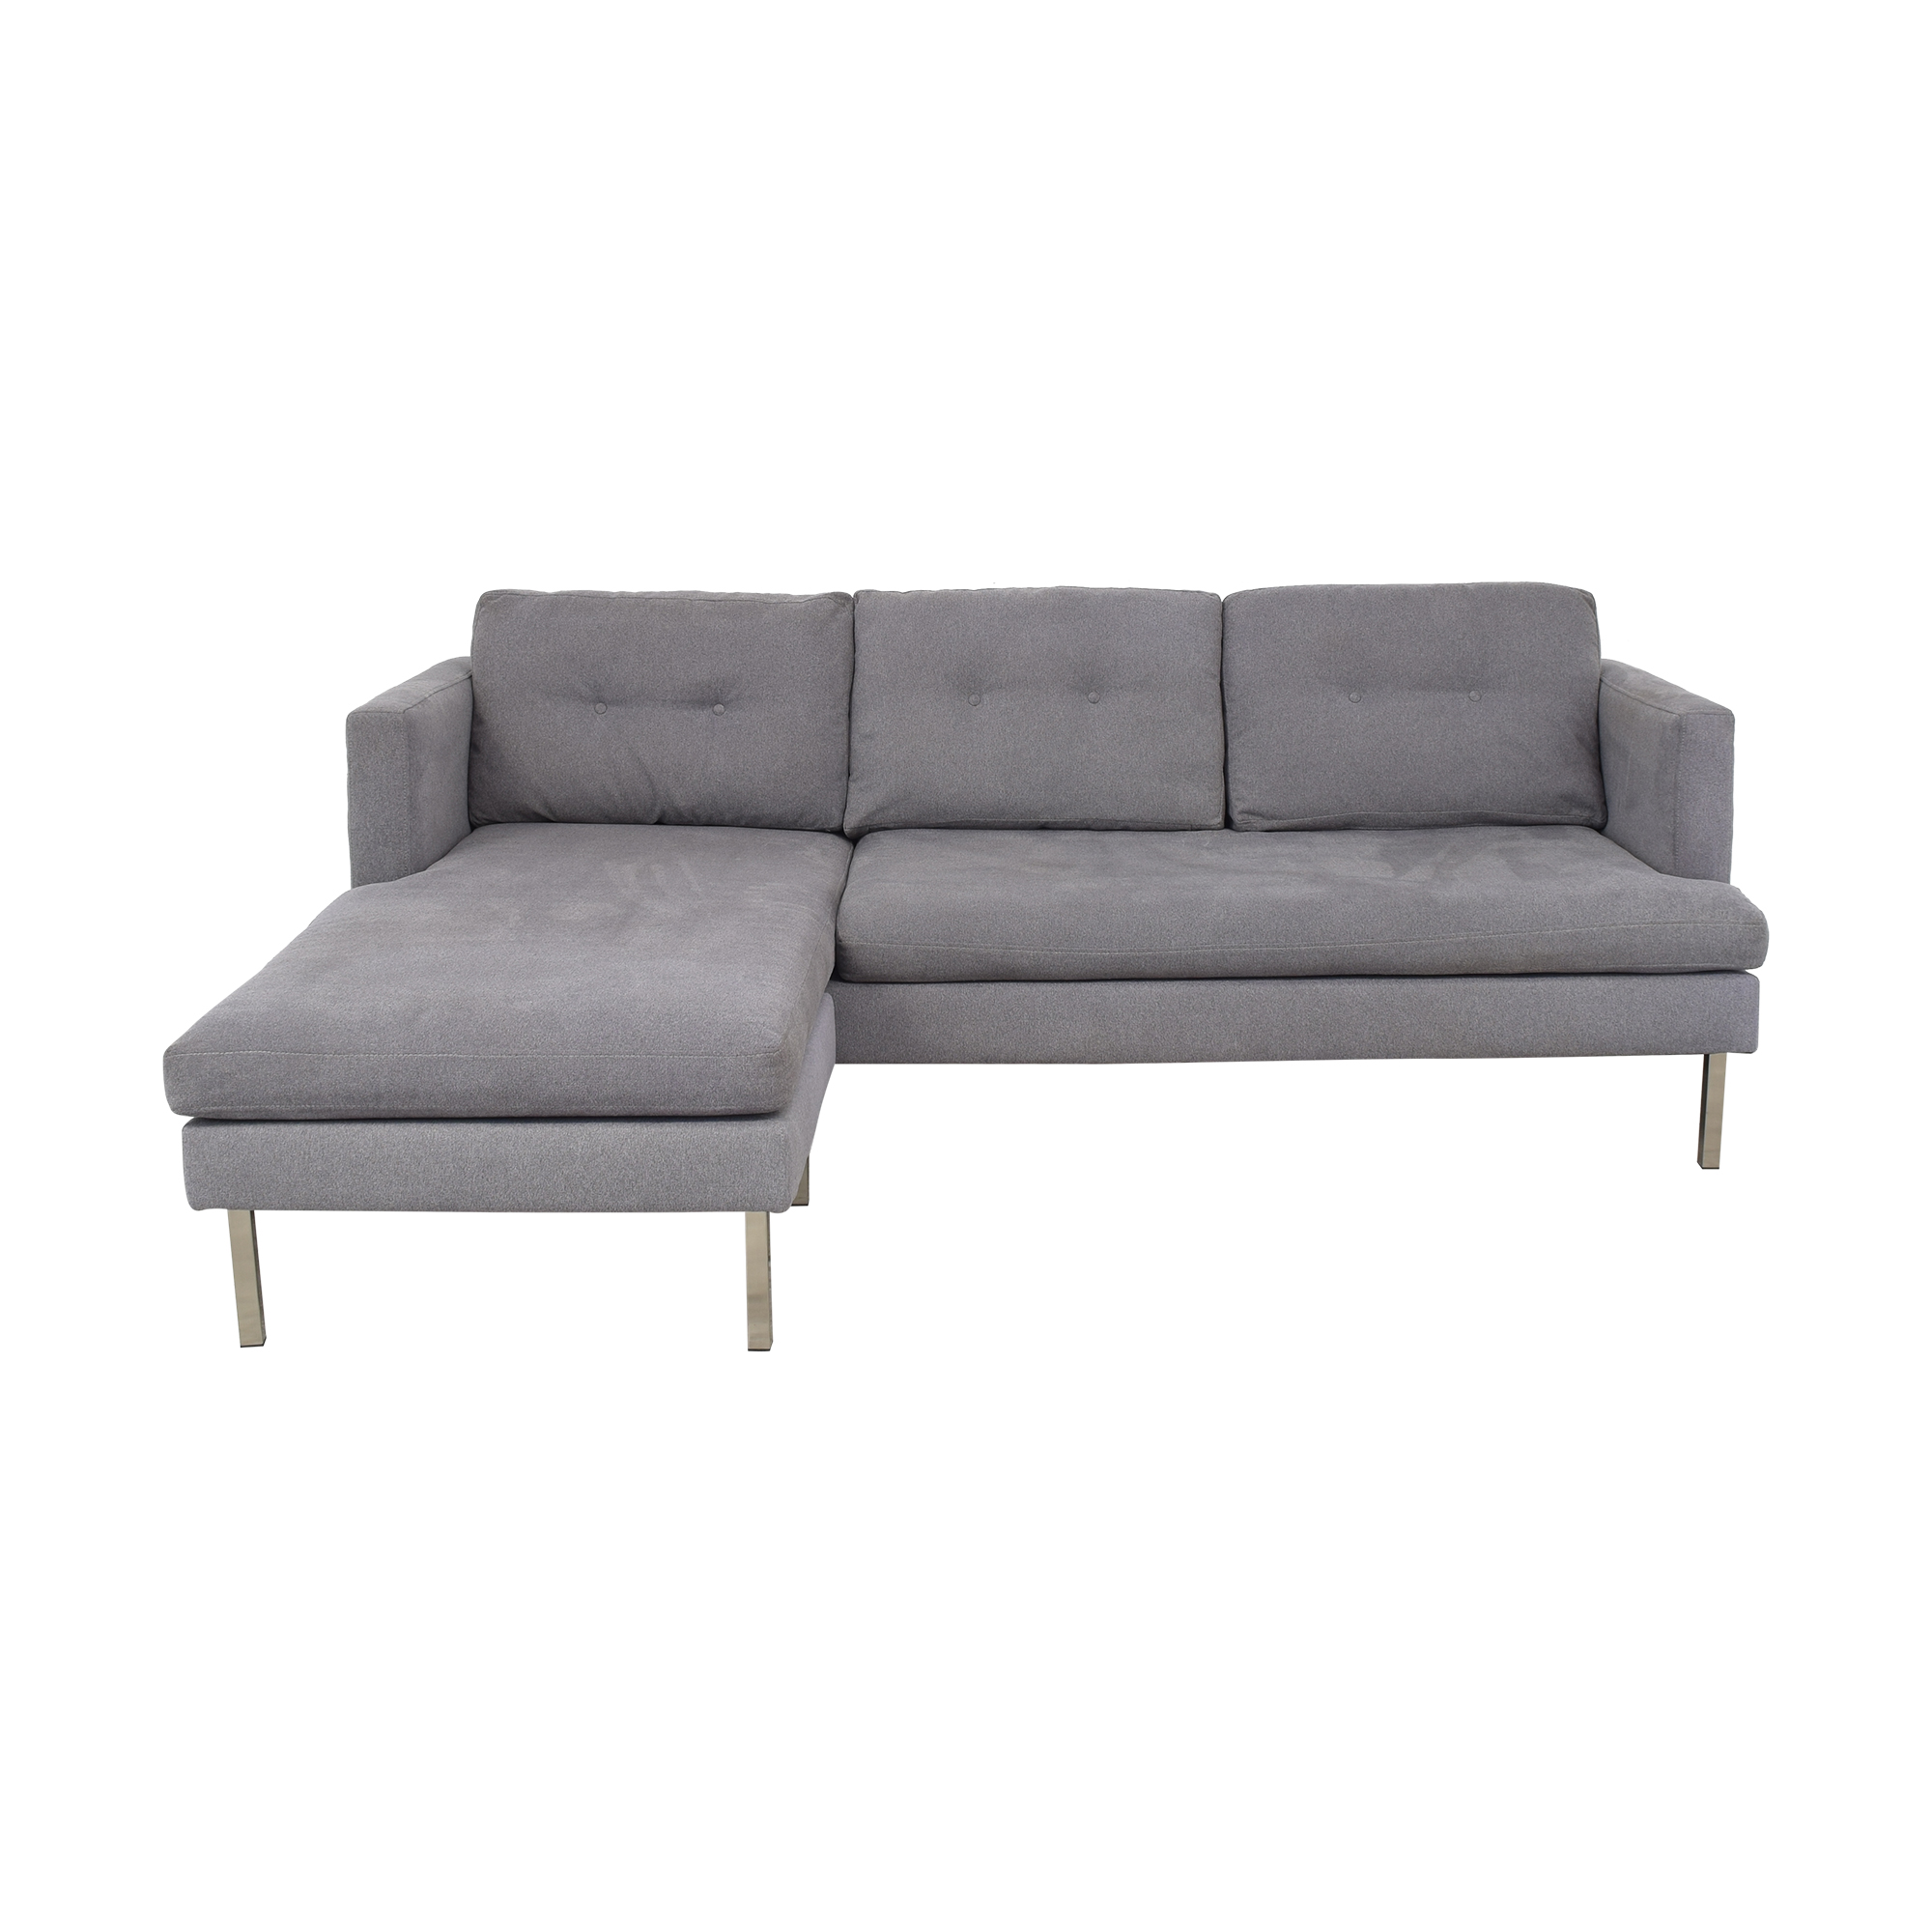 West Elm Jackson Sectional Sofa / Sectionals